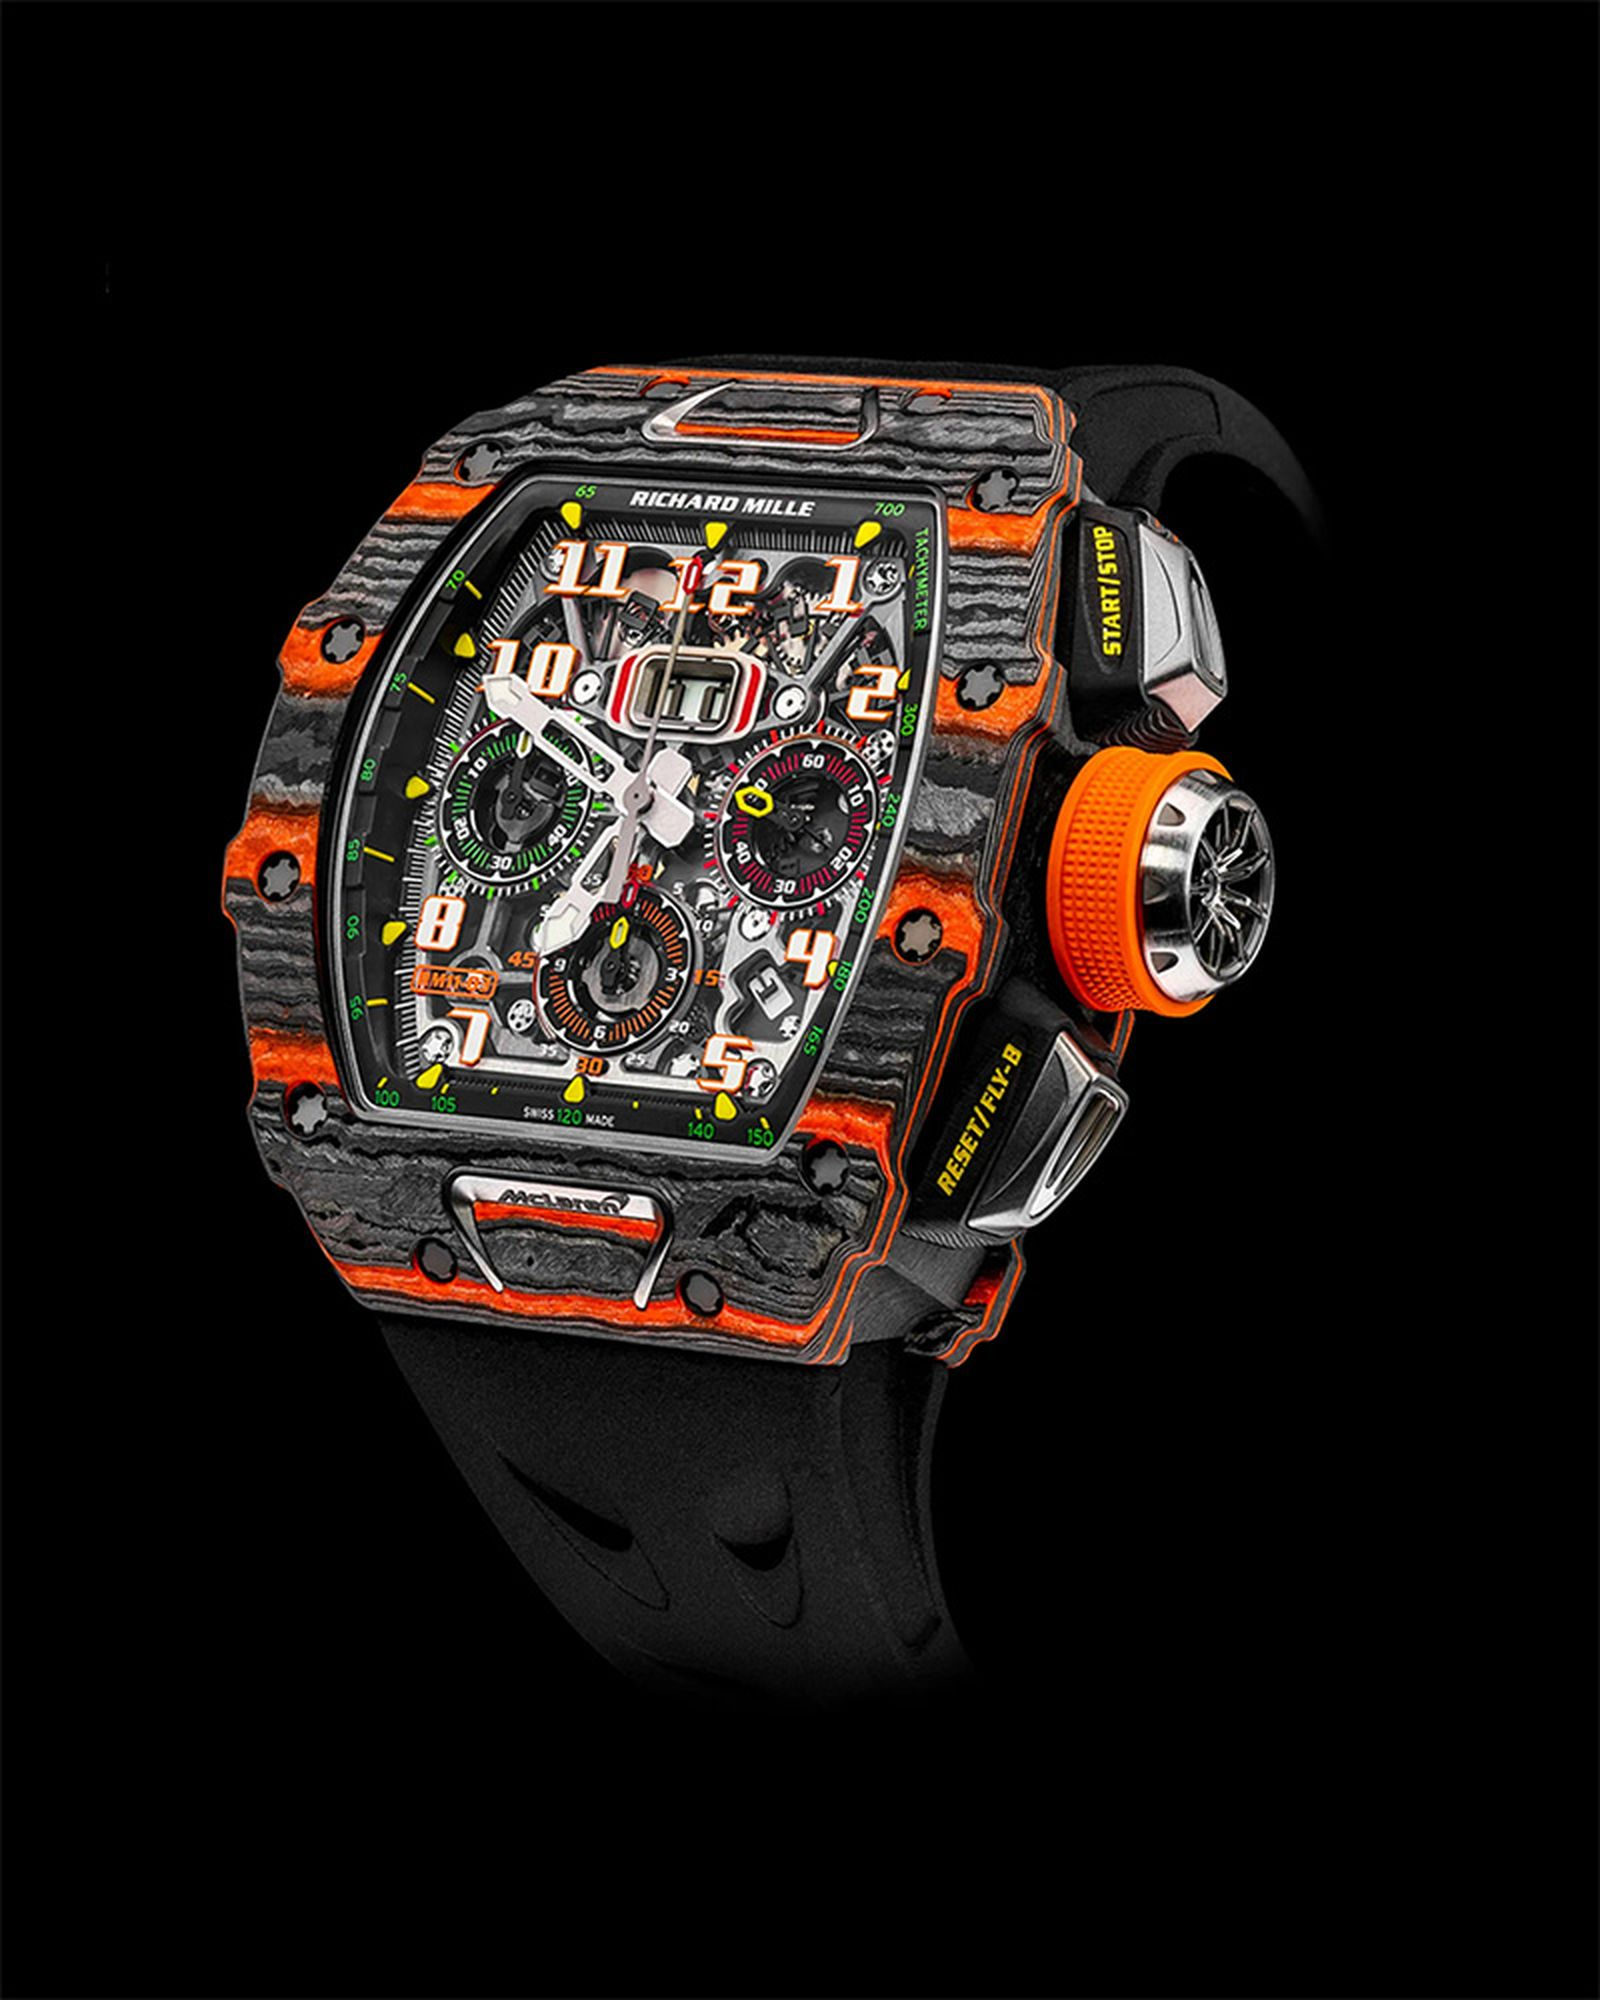 Richard Millie RM 11-03 Automatic Winding Flyback Chronograph Mclaren.